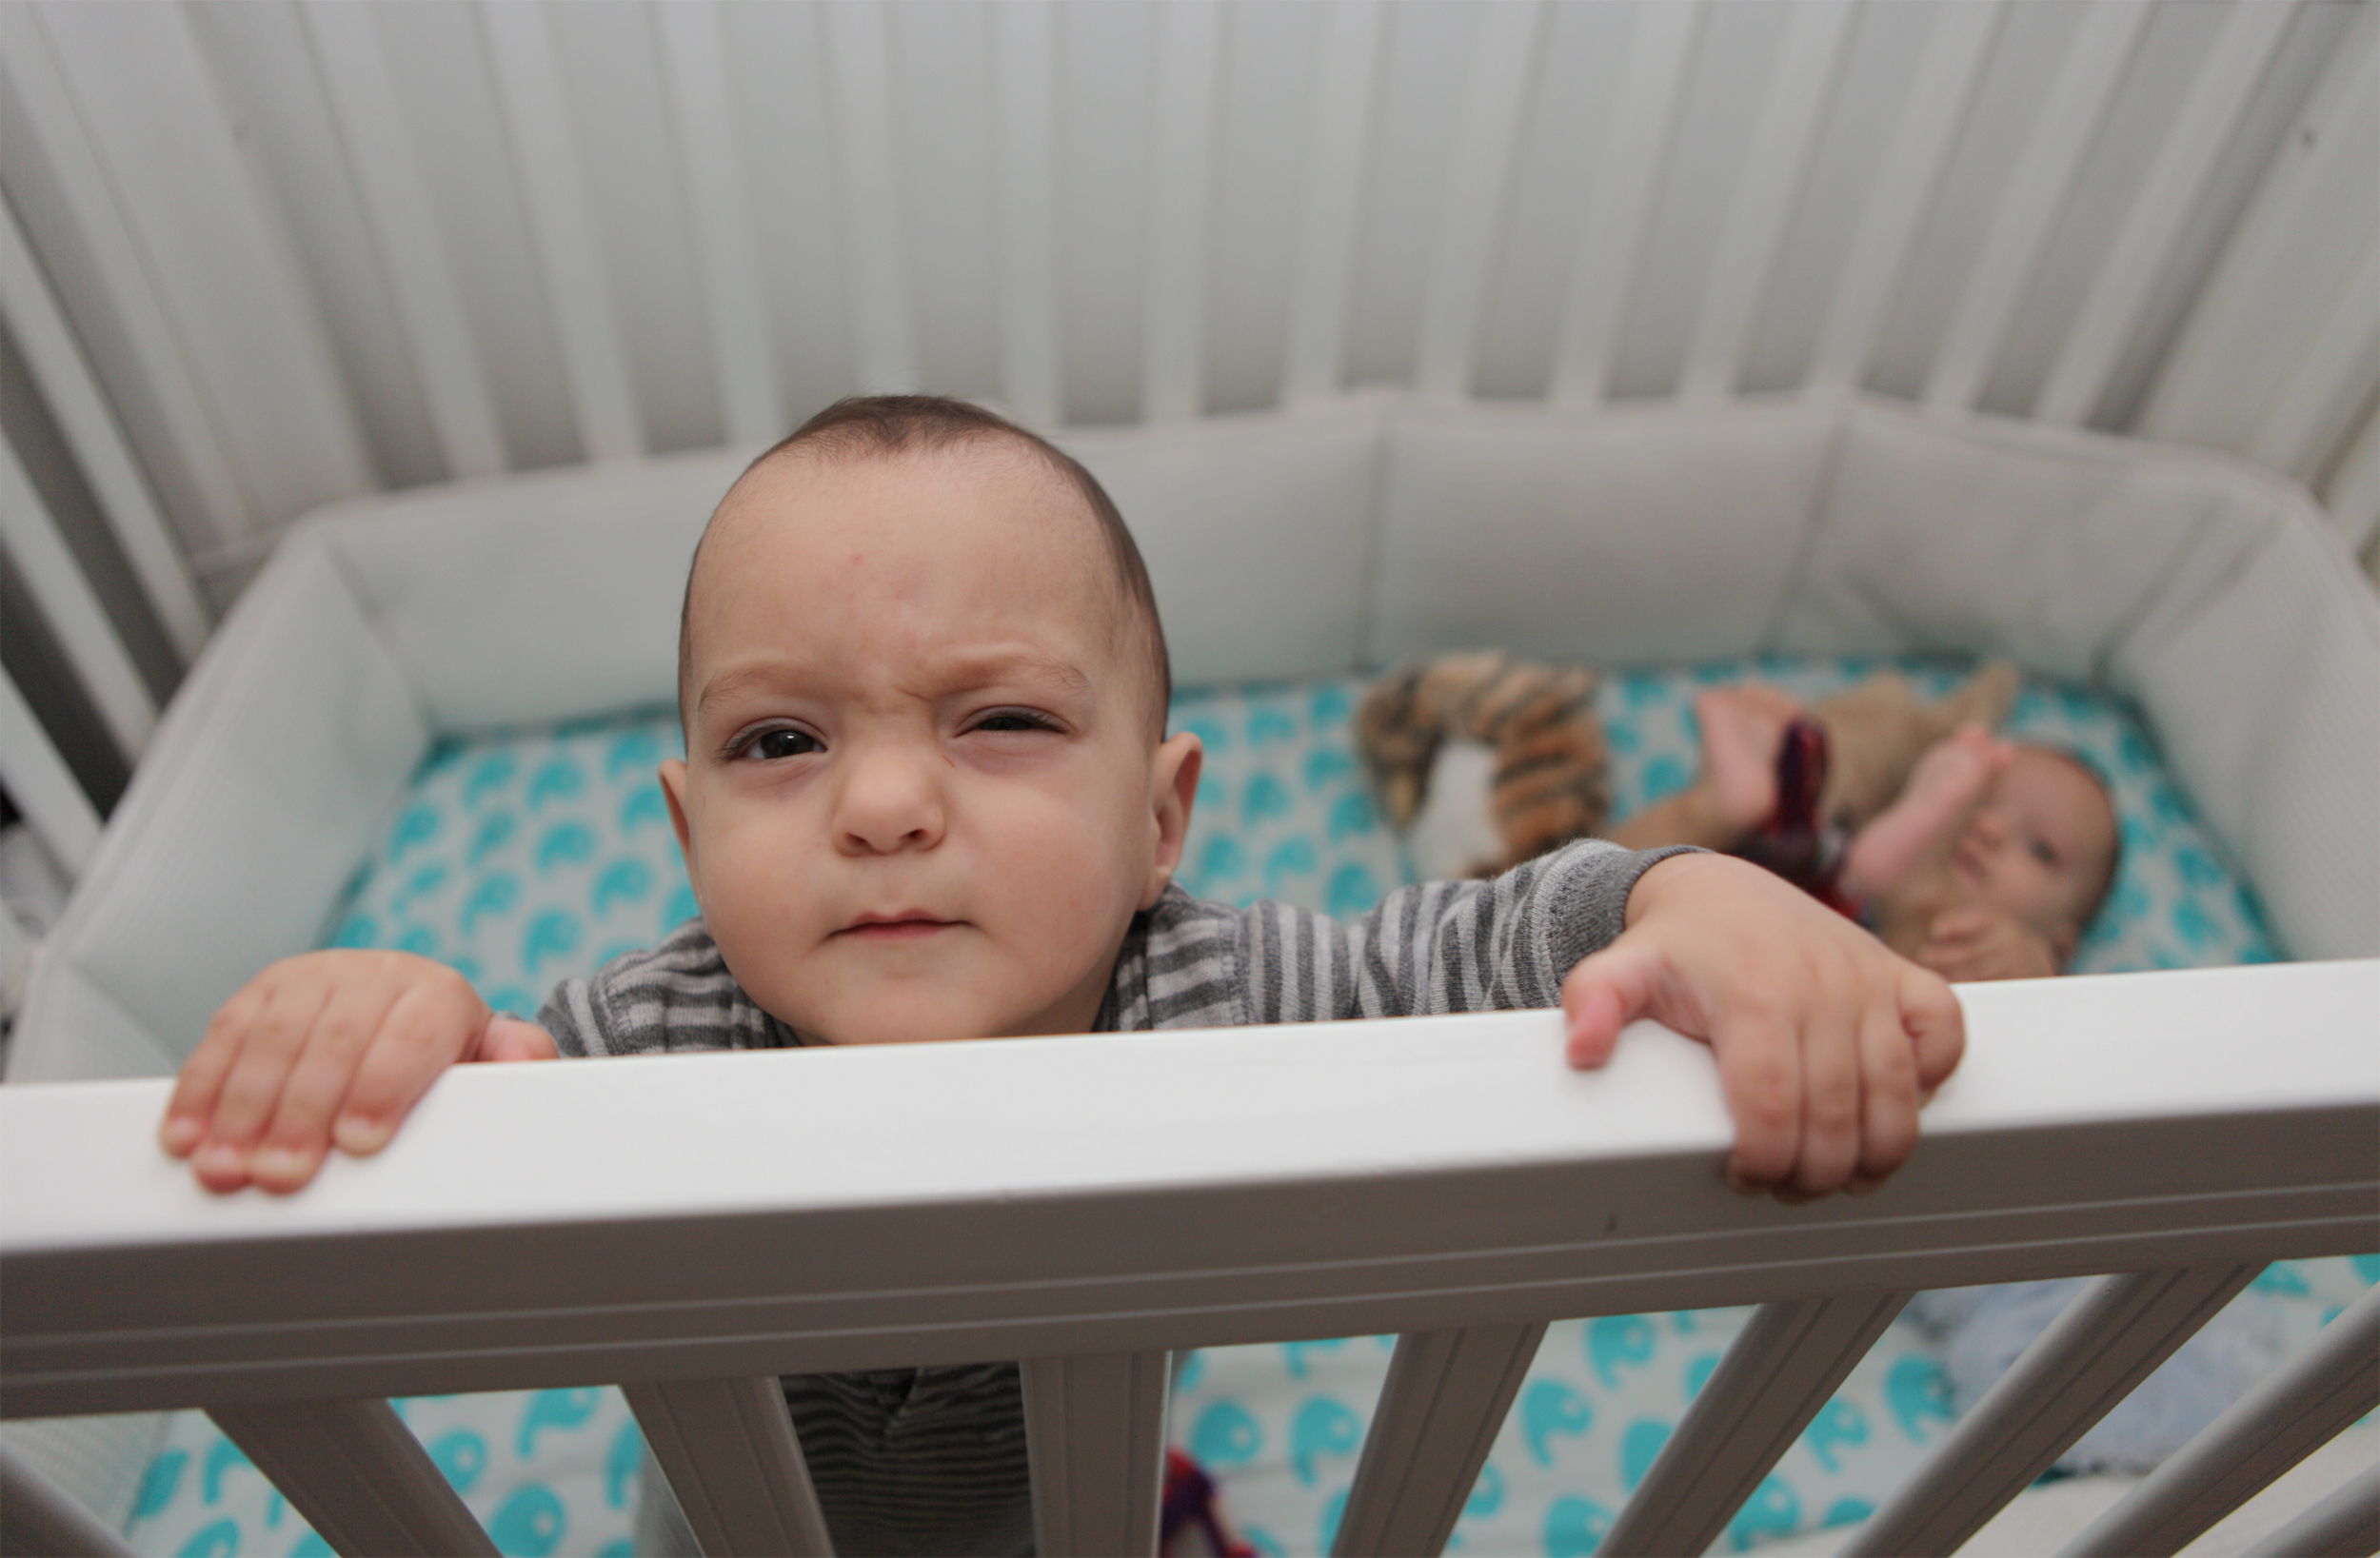 Image: Babies in crib